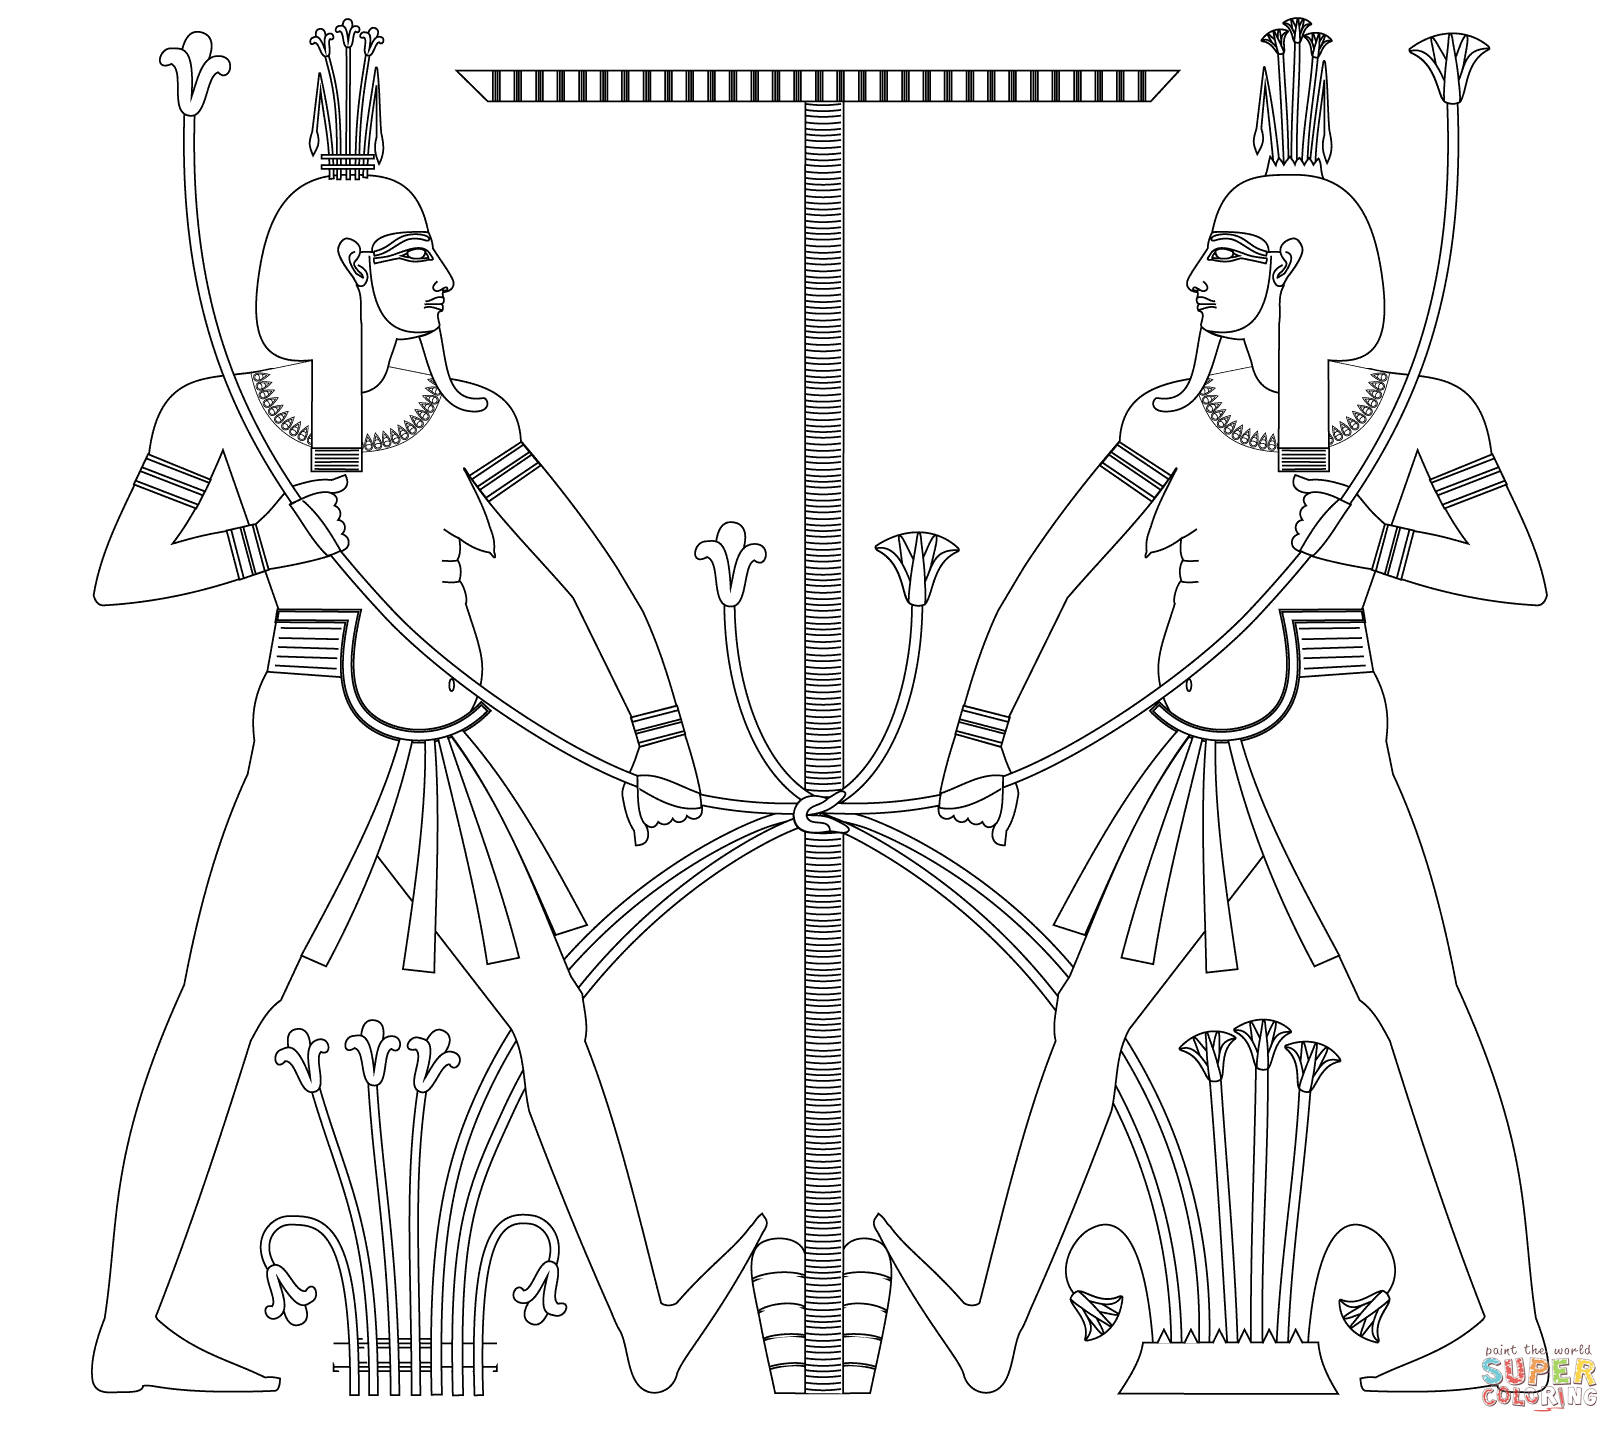 Cool Ancient Egypt Coloring Pages Free Design | colouring pages ...